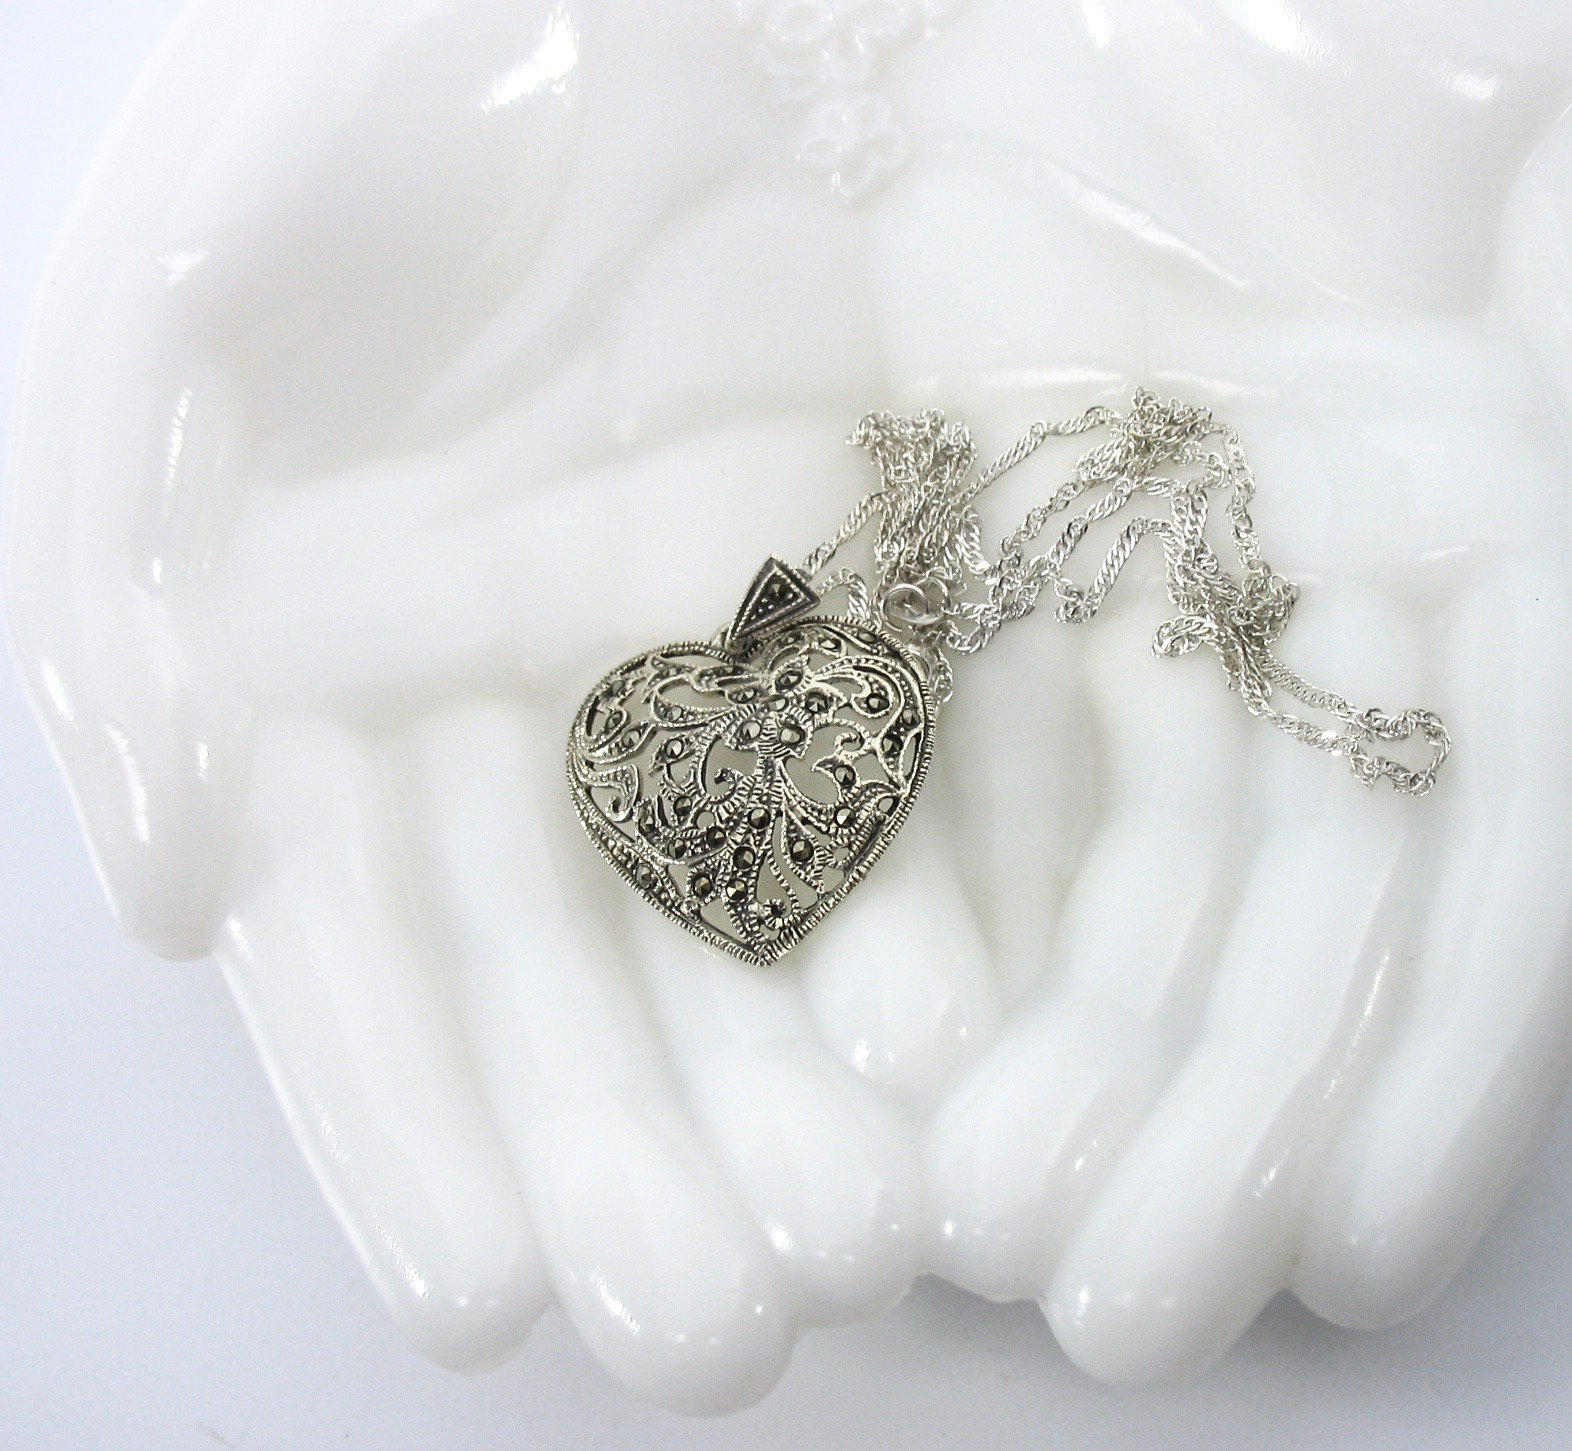 Sterling Marcasite Heart Necklace, Heart Pendant, Silver Filigree, signed 925, T